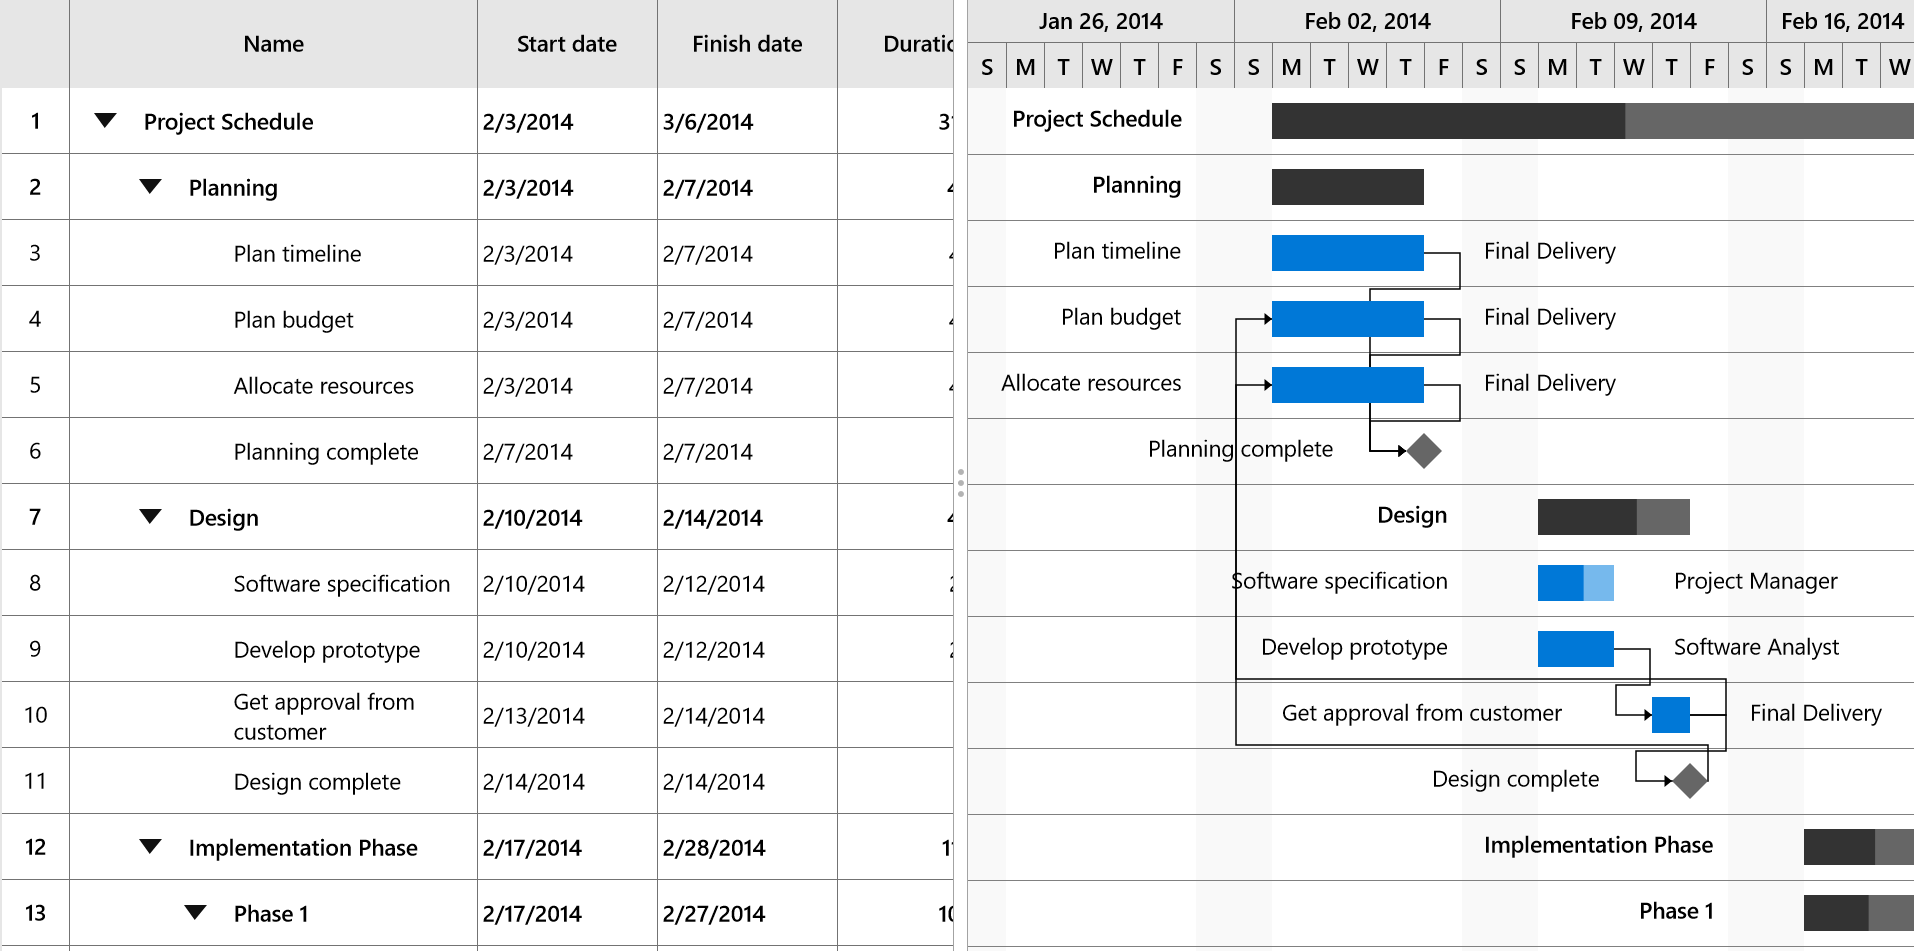 UWP Gantt timescale configured with top tier as weeks and bottom tier as days